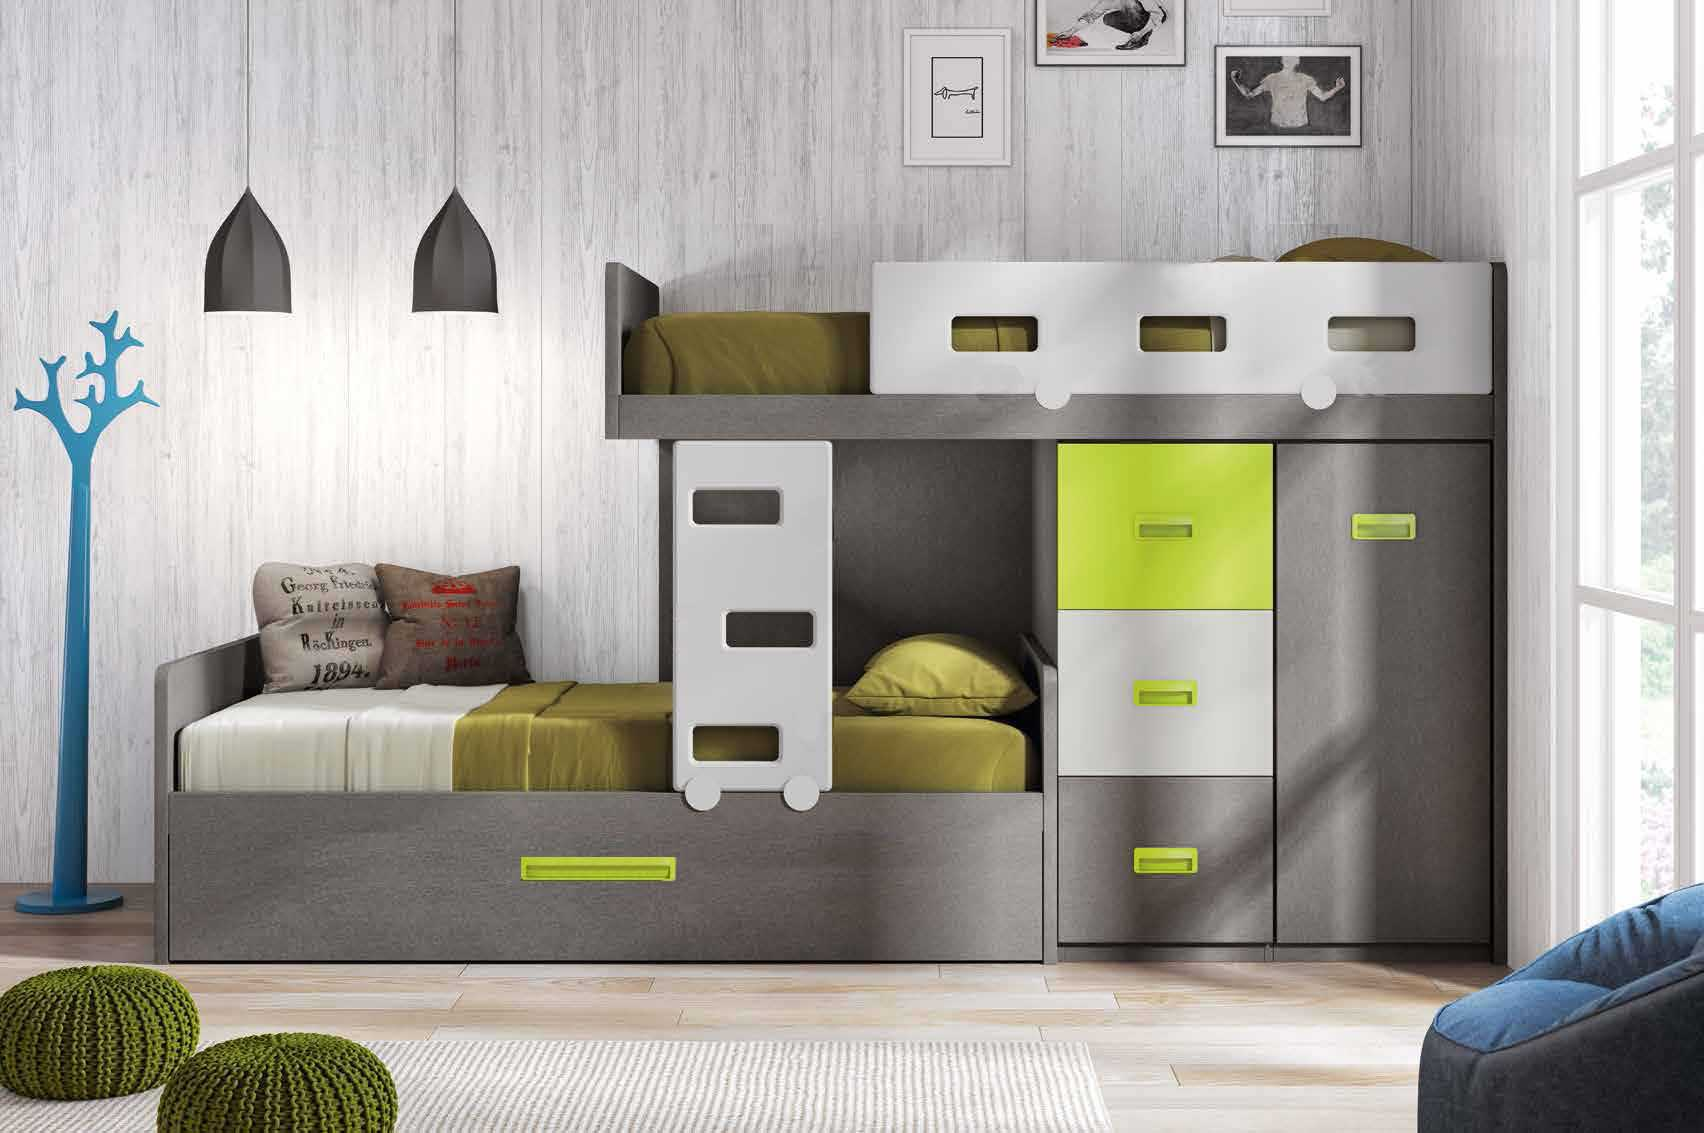 lit superpos d cal fun et personnalisable glicerio. Black Bedroom Furniture Sets. Home Design Ideas